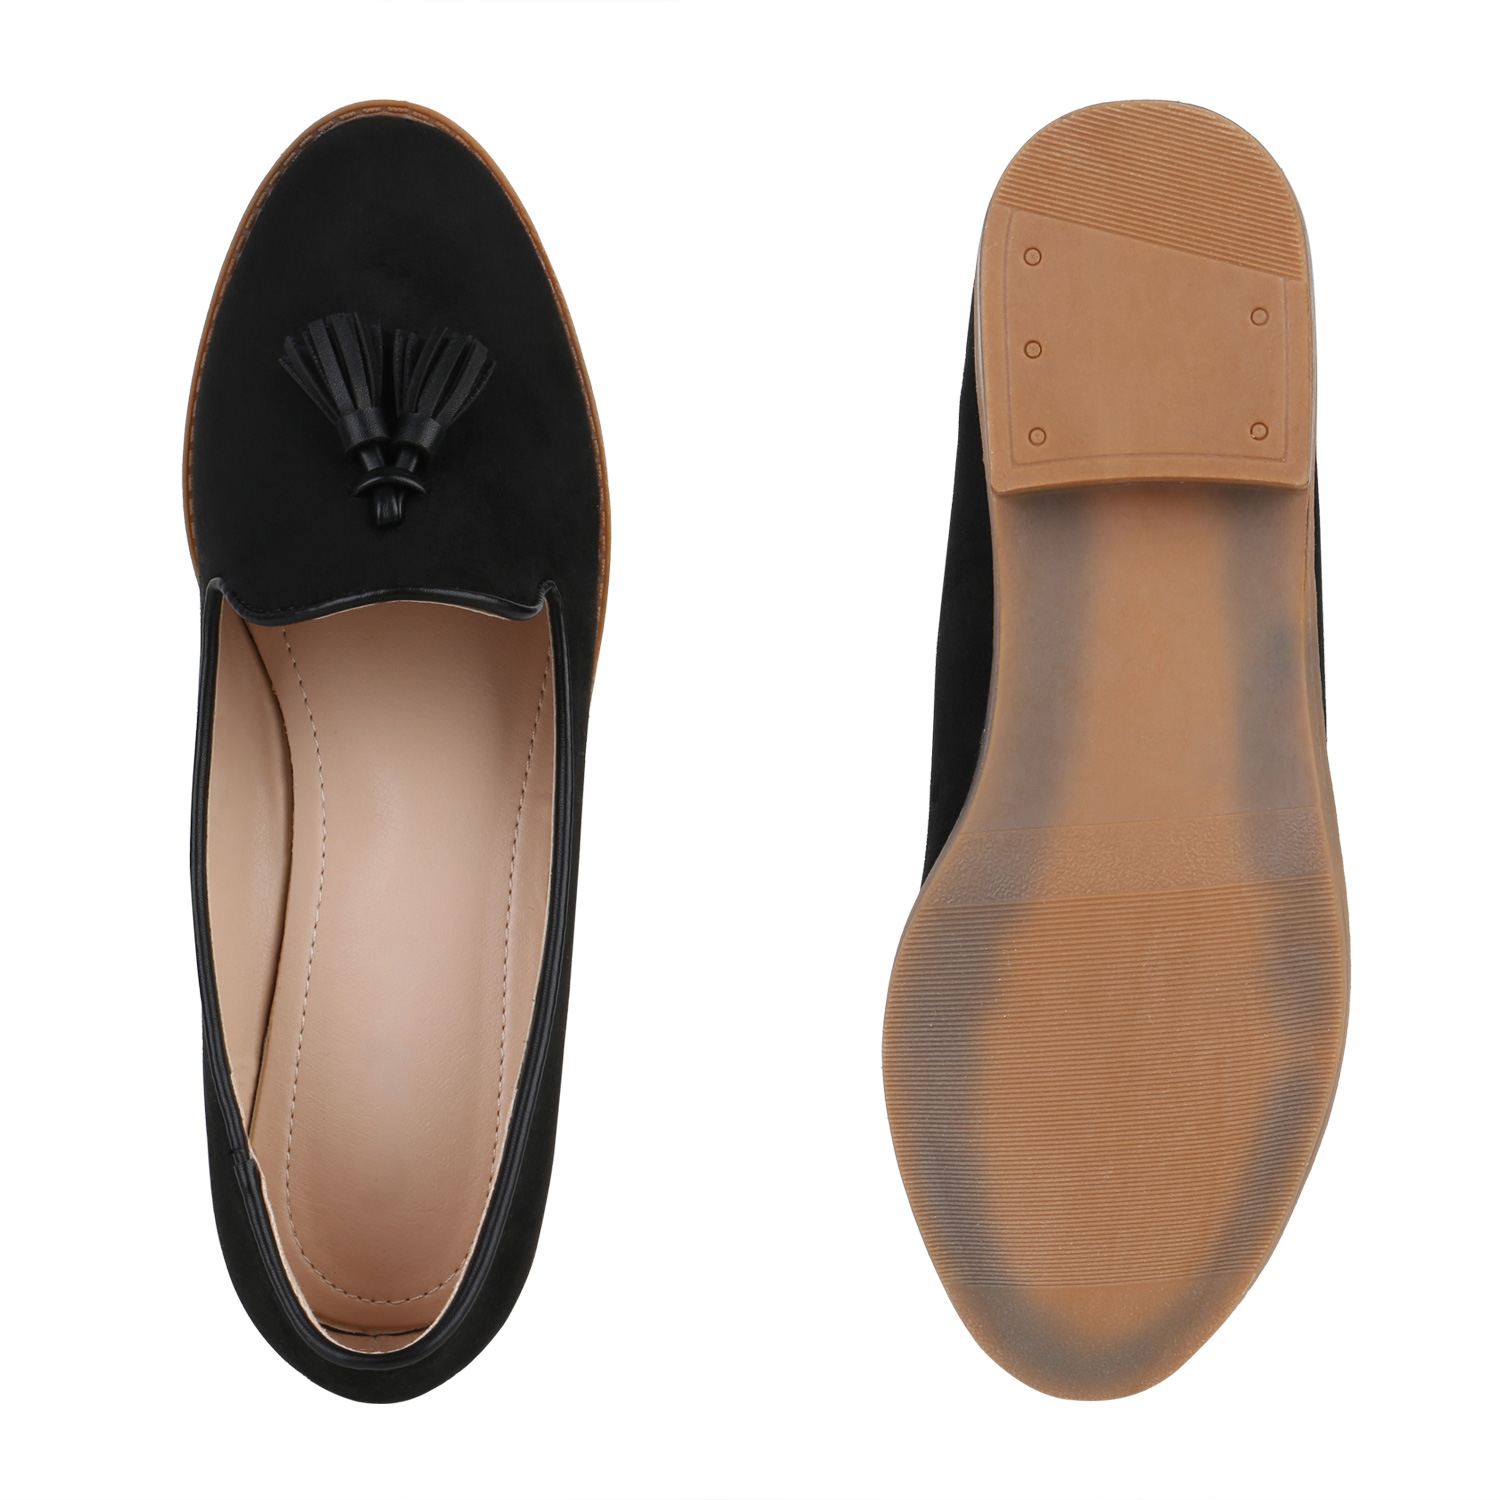 damen slippers tassel loafers quasten elegante slip ons schuhe 820532 schuhe ebay. Black Bedroom Furniture Sets. Home Design Ideas